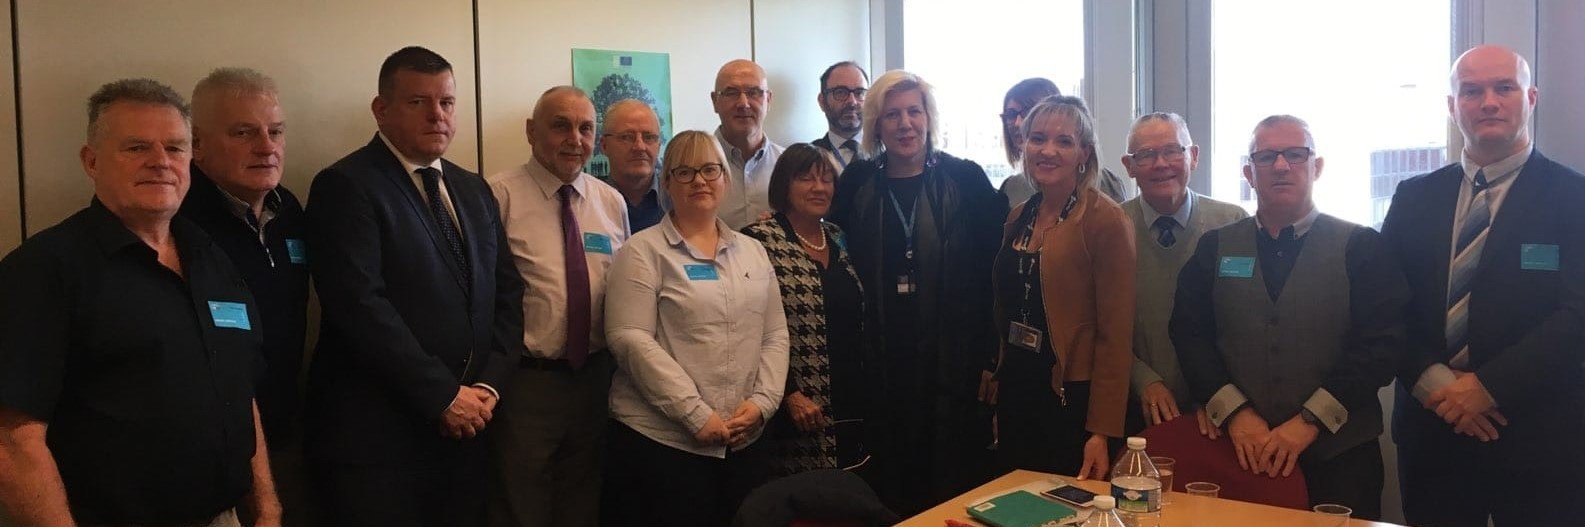 Family representatives of the Time for Truth Campaign meet with the new European Human Rights Commissioner, Dunja Mijatović.